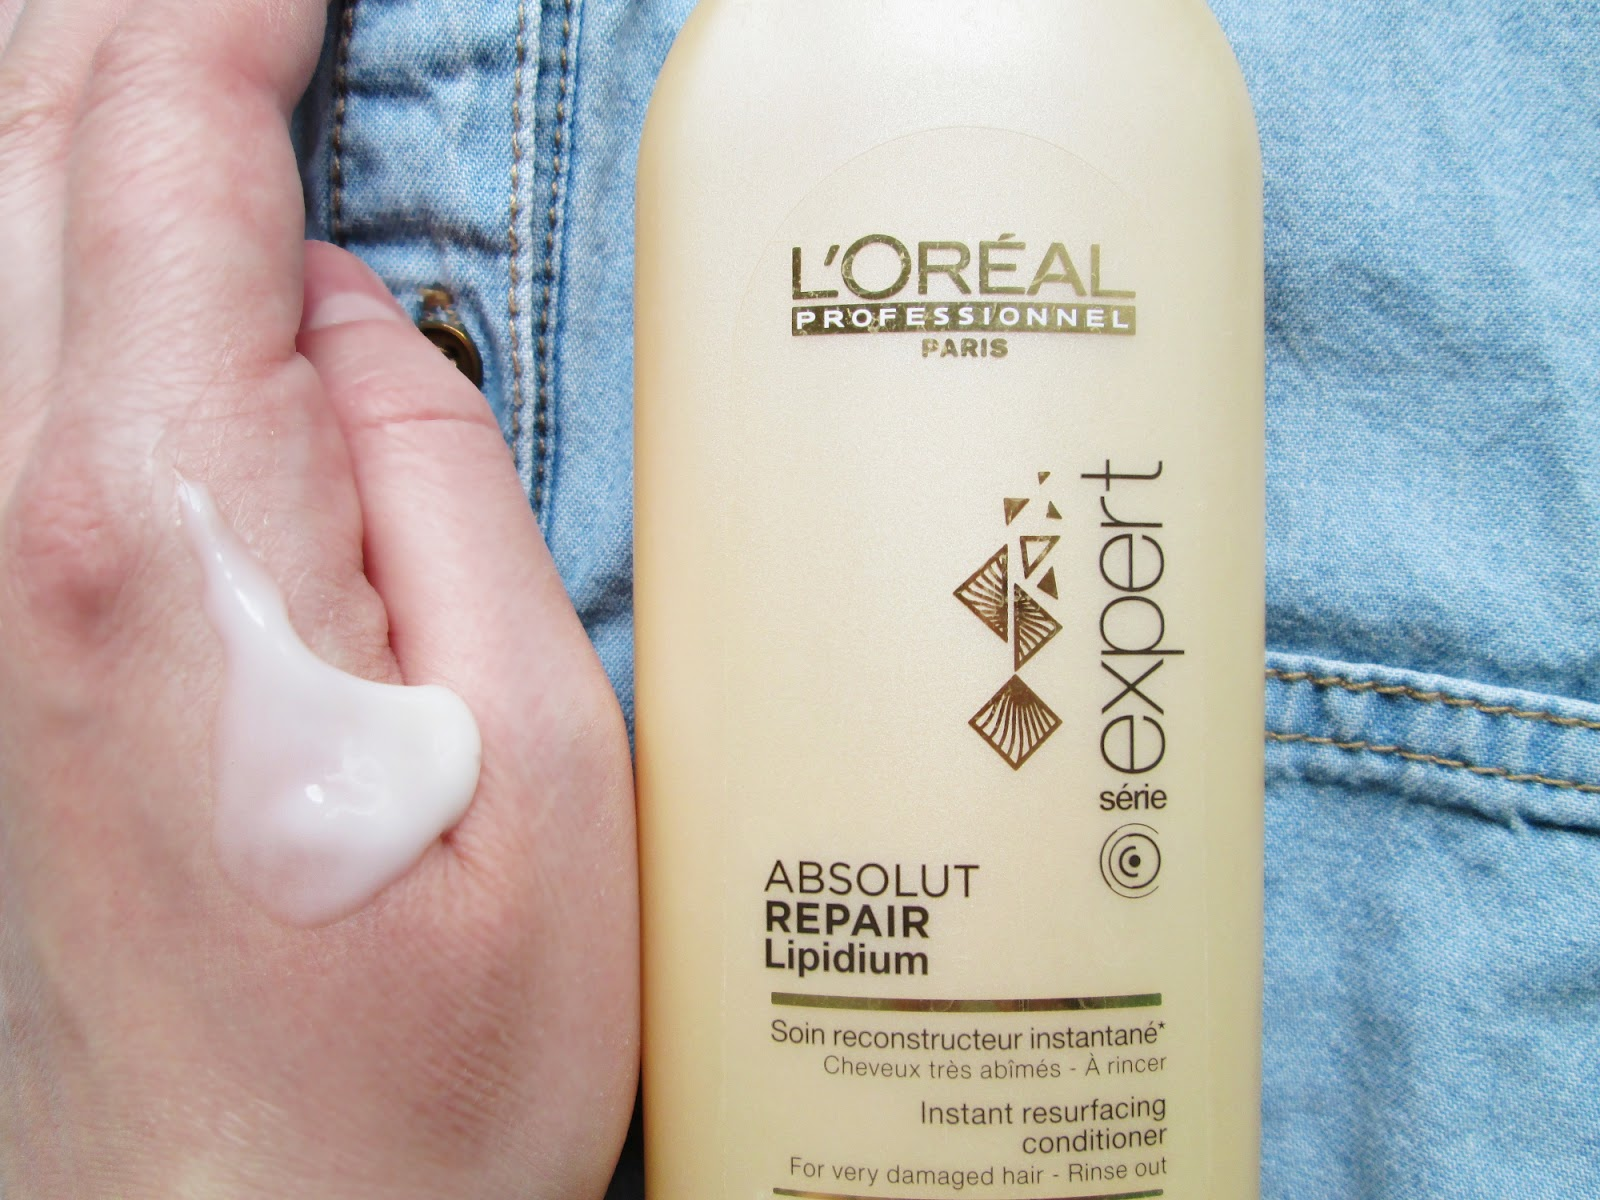 Odżywka L'Oreal Absolut Repair Lipidium